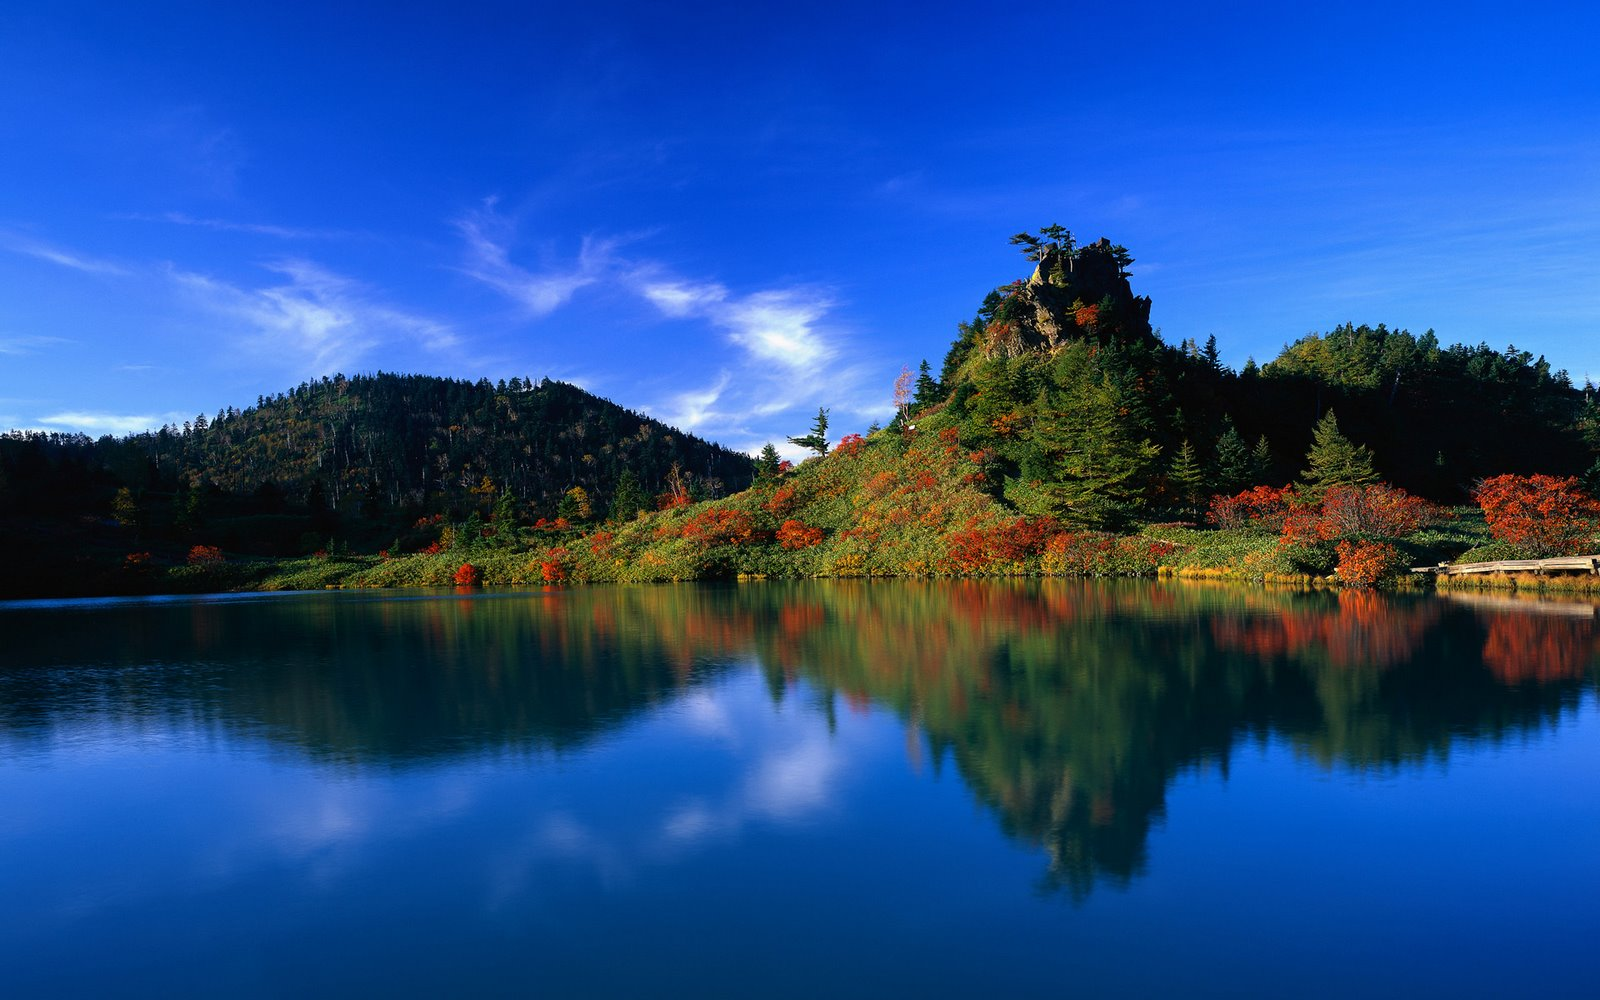 Japan Widescreen Wallpapers Cool Desktop Wallpapers and Pictures 1600x1000